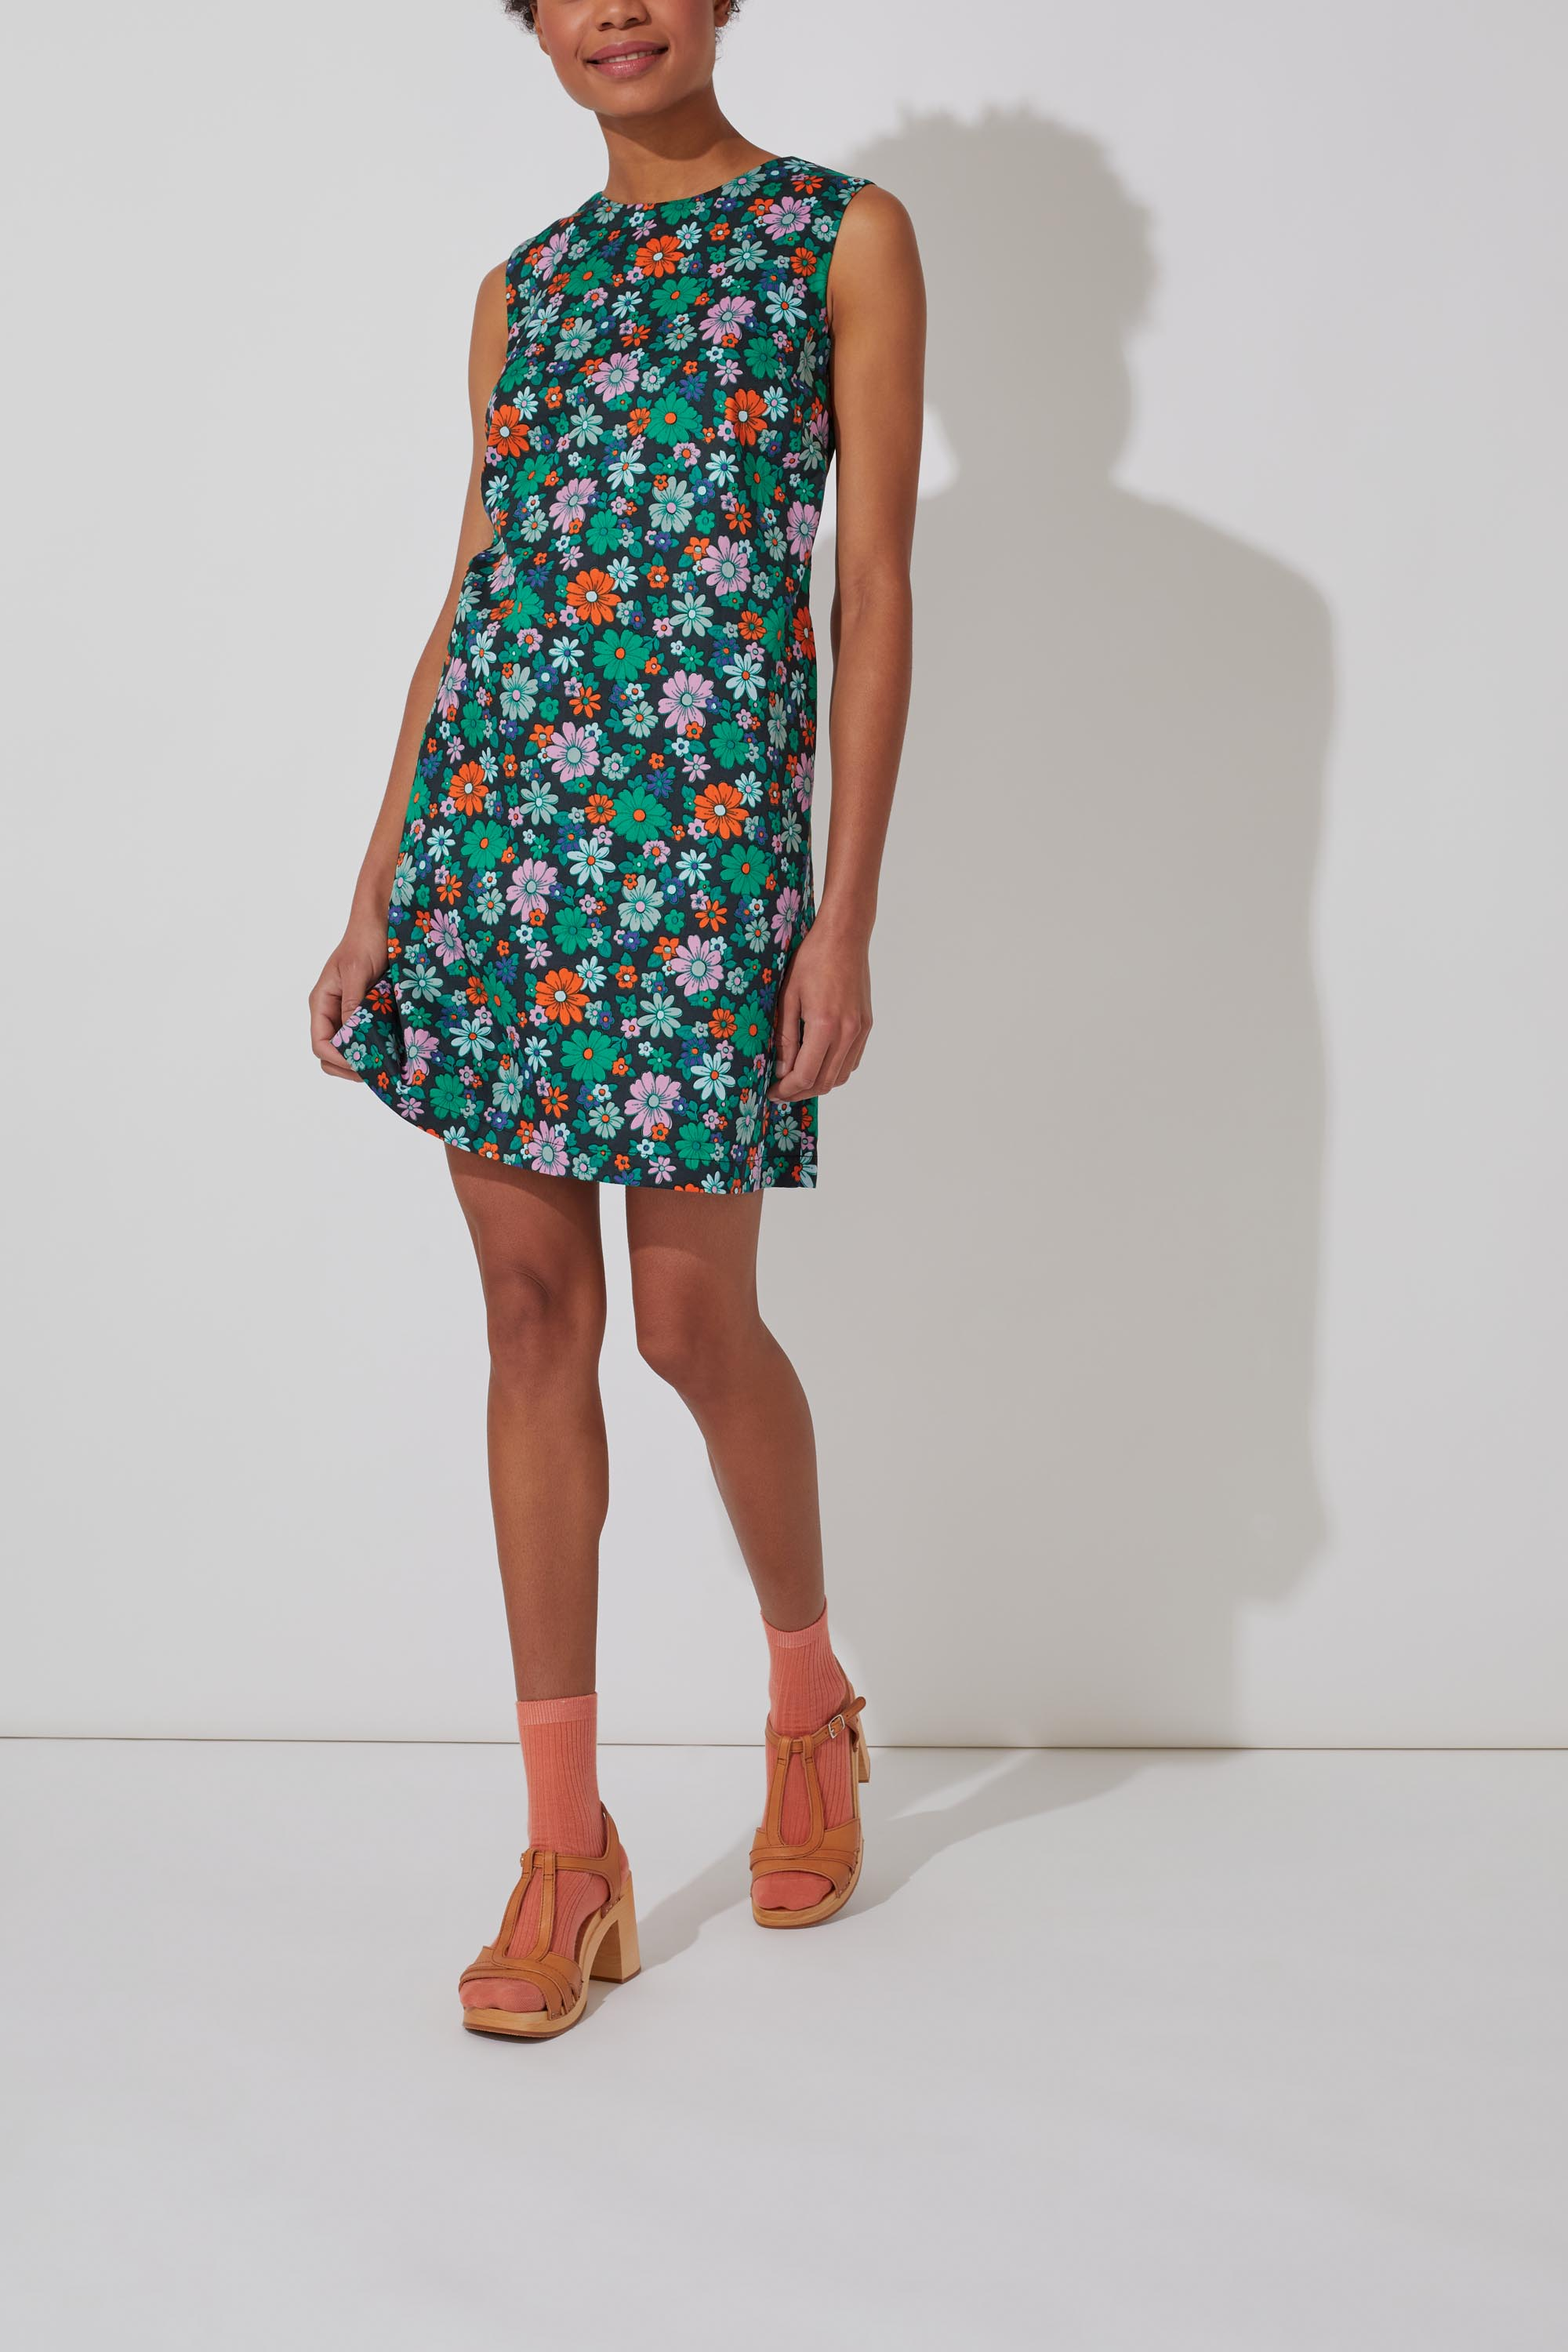 Cath Kidston Petals Sleeveless Shift Dress in Forest Green, 14